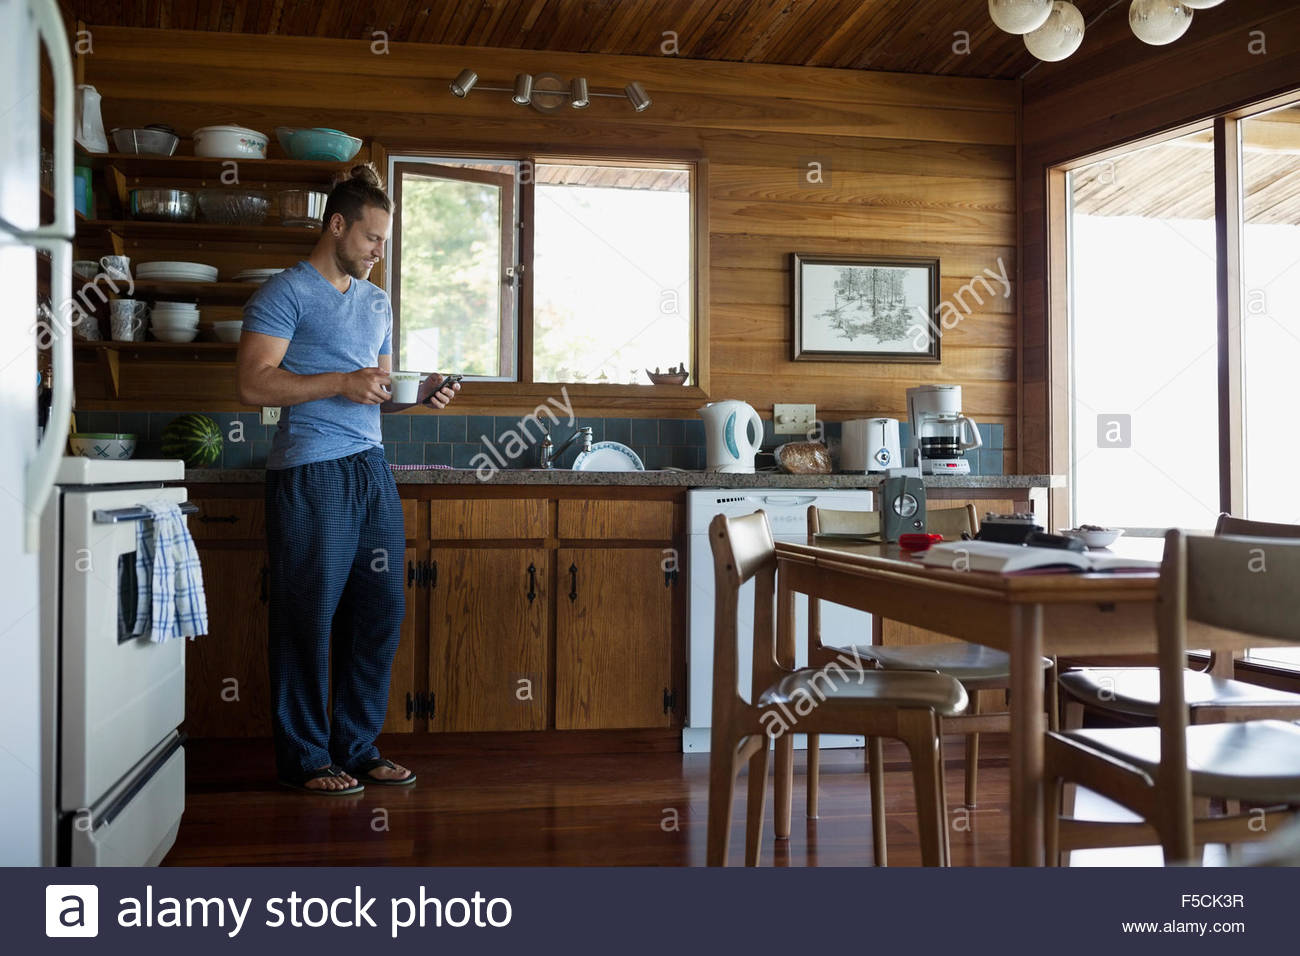 Man Drinking Coffee And Texting In Cabin Kitchen